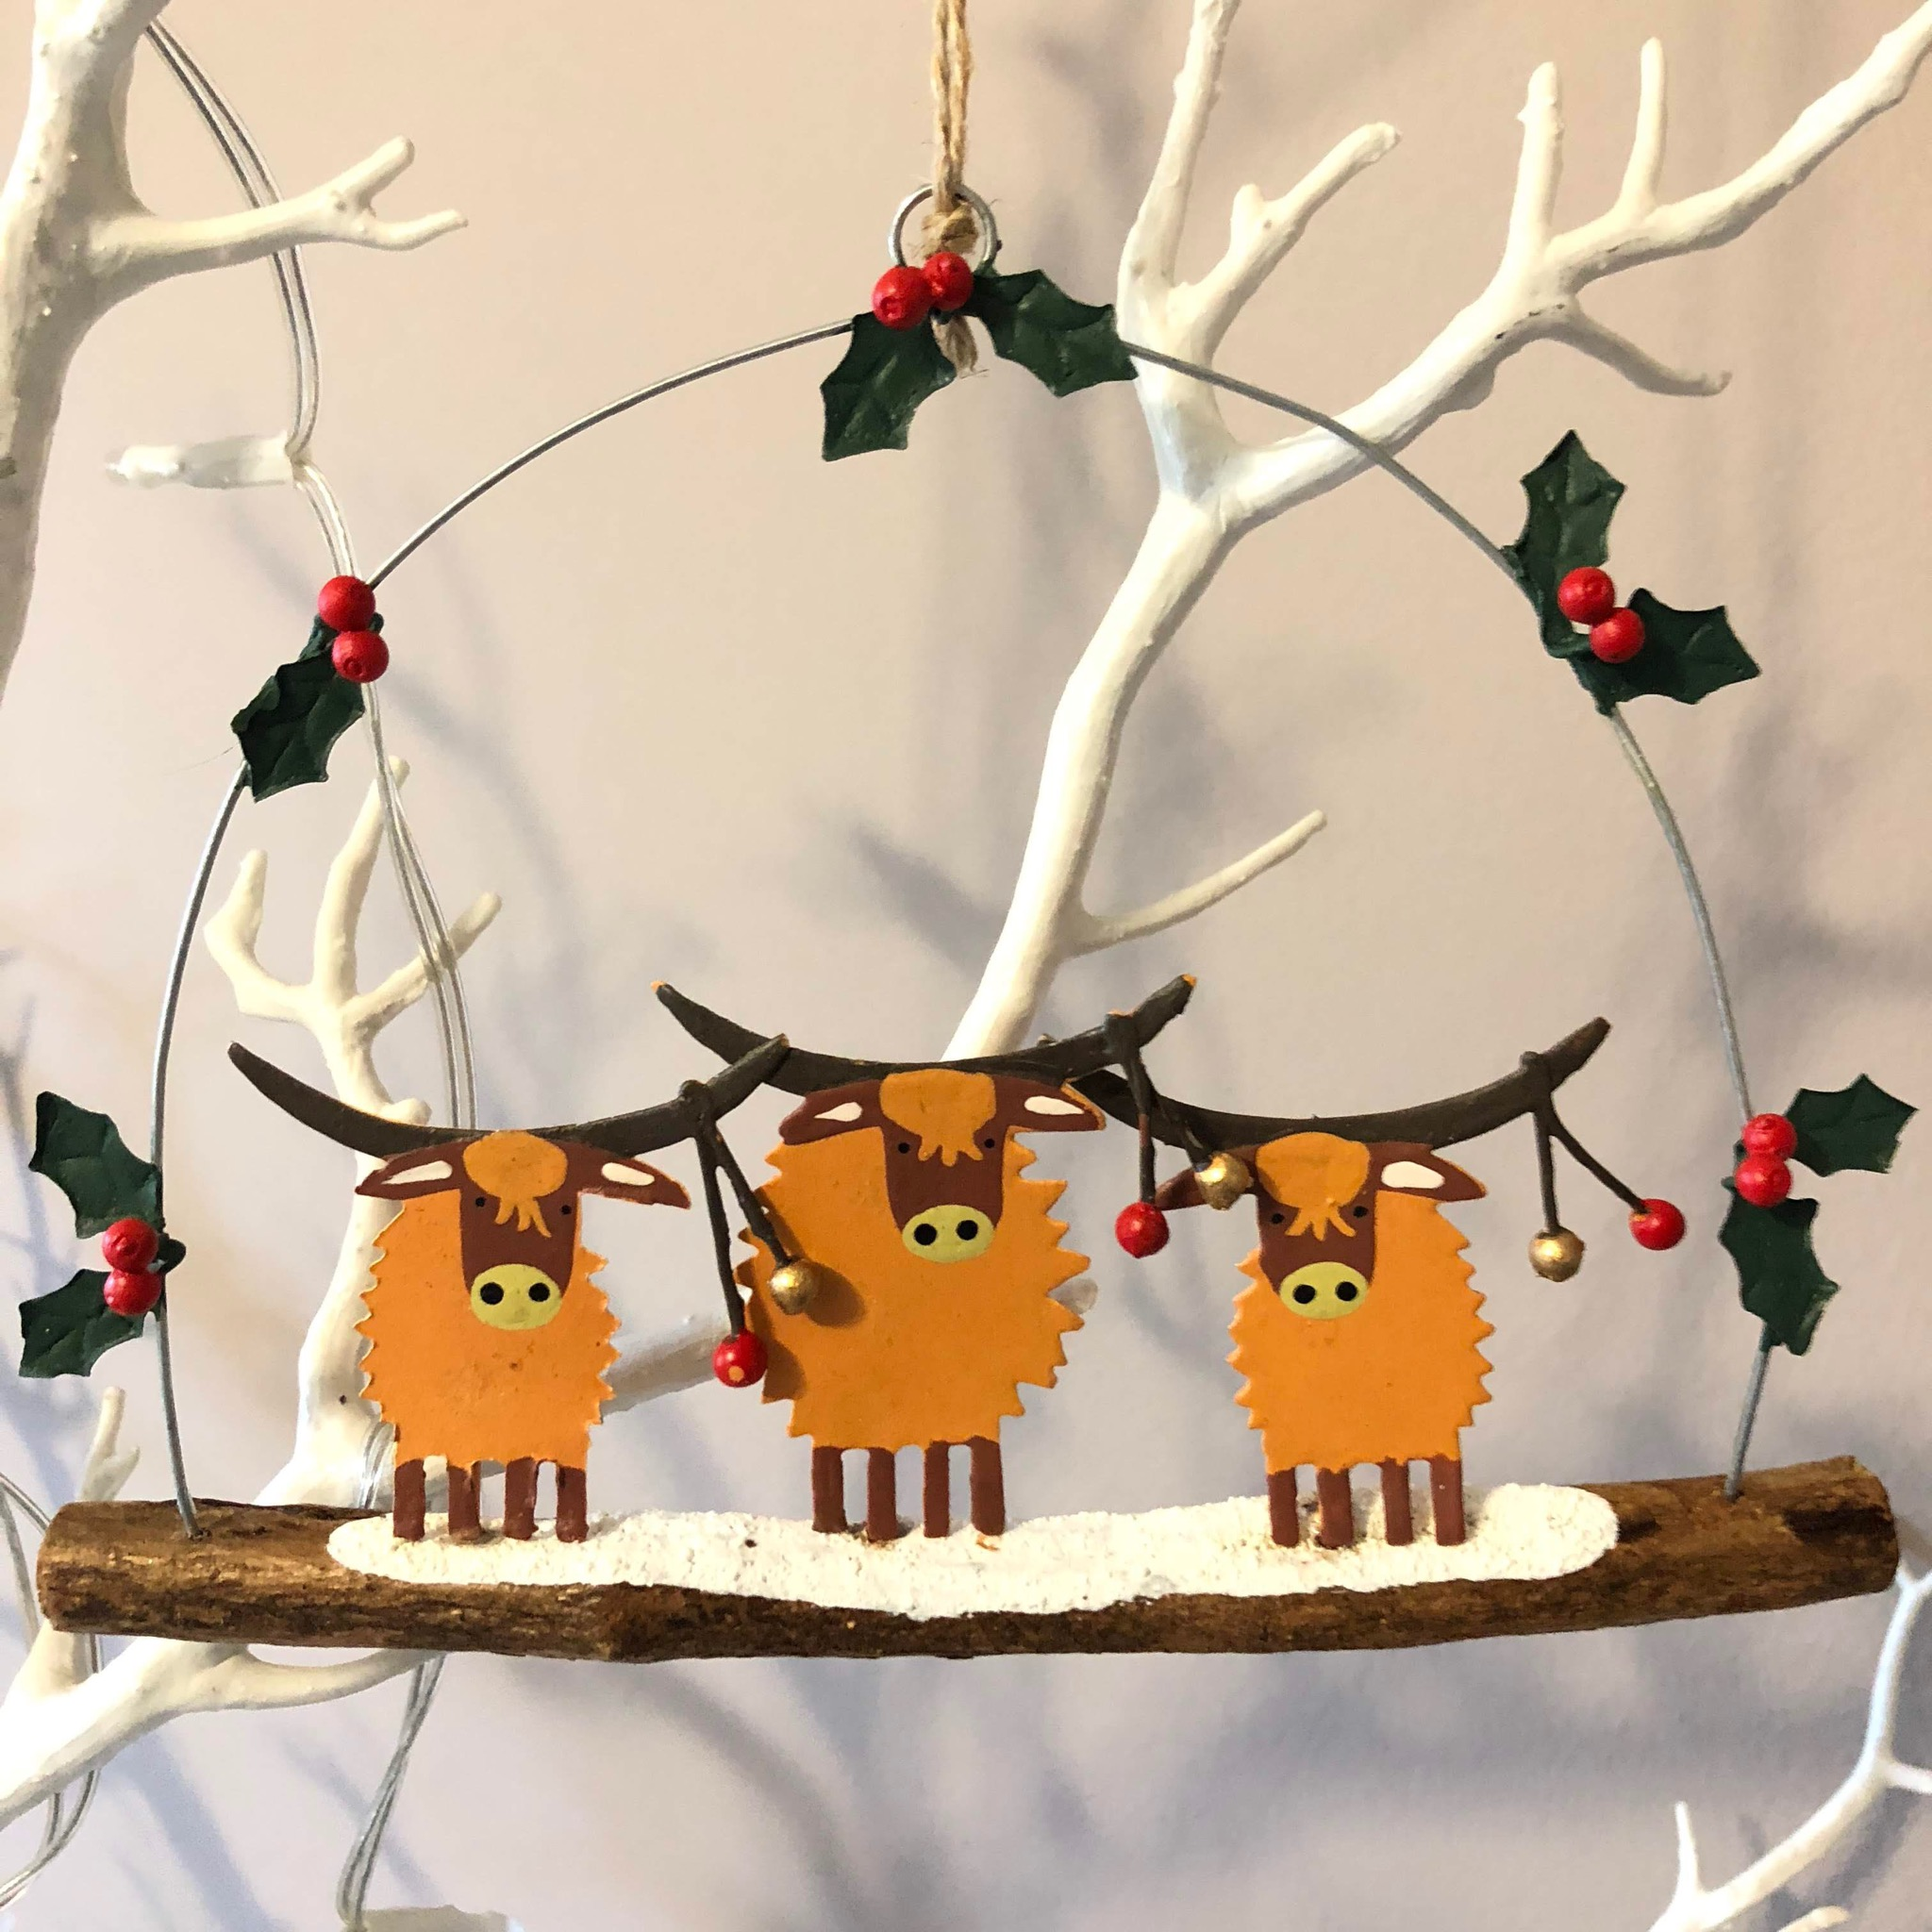 3 highland cows with baubles hanging Christmas decoration by shoeless joe